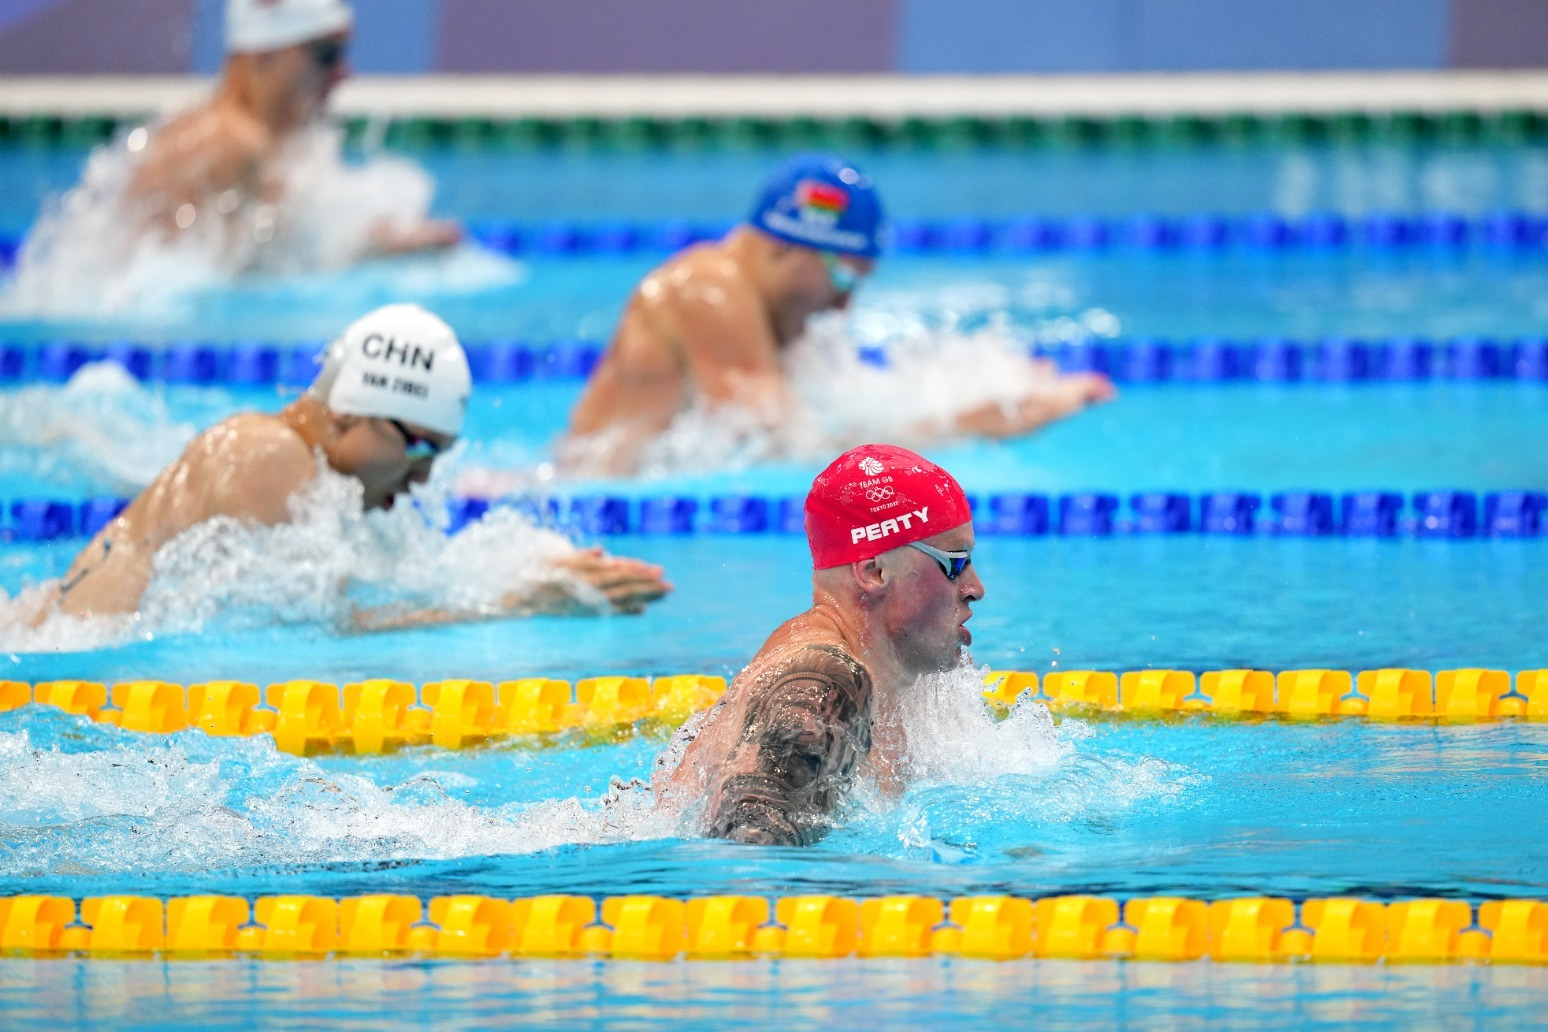 Adam Peaty eases into 100m breaststroke final as he aims to retain Olympic title